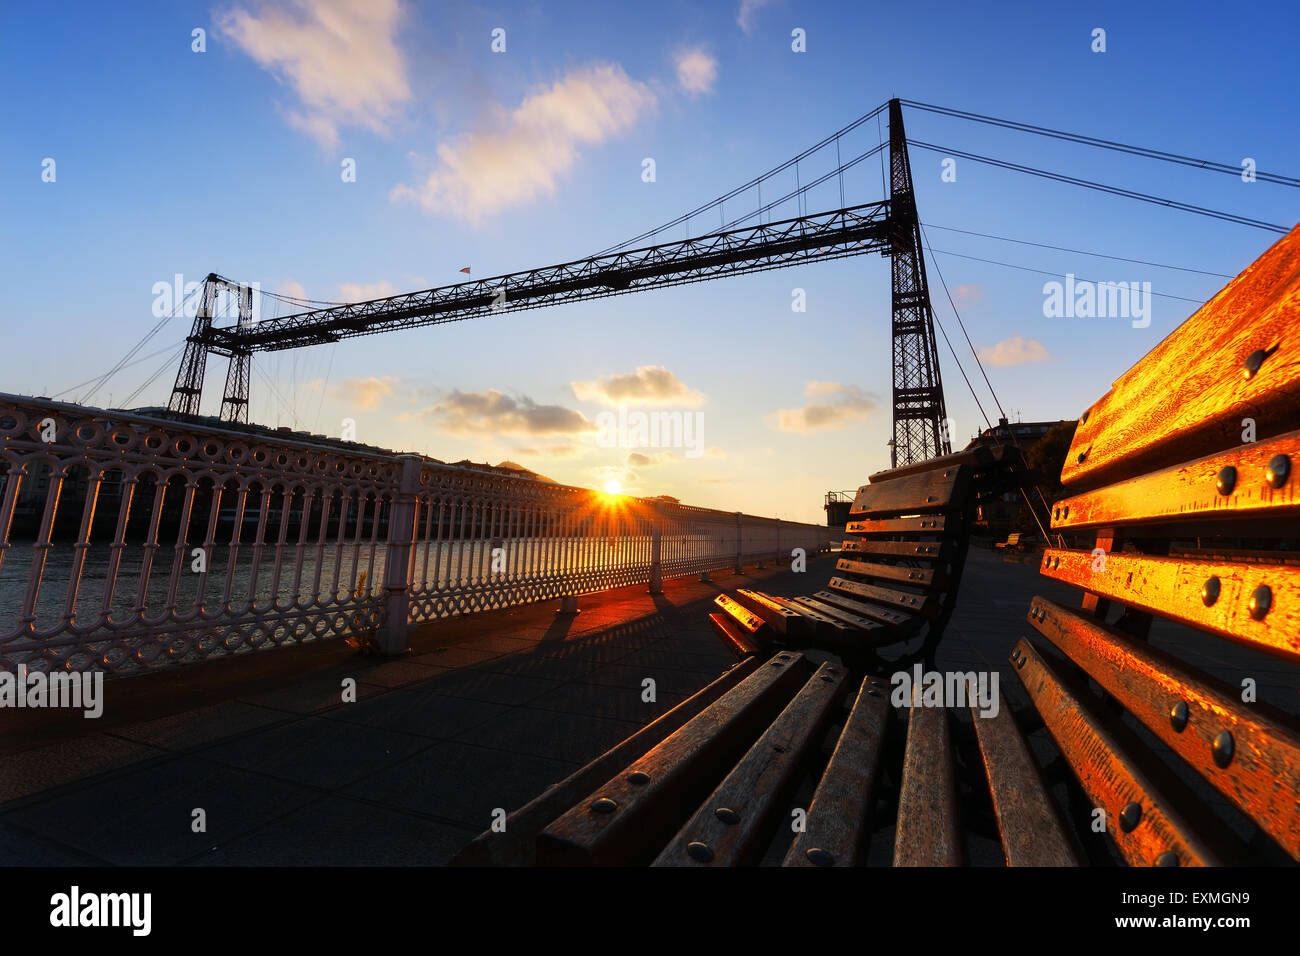 hanging bridge of vizcaya in Getxo - Stock Image